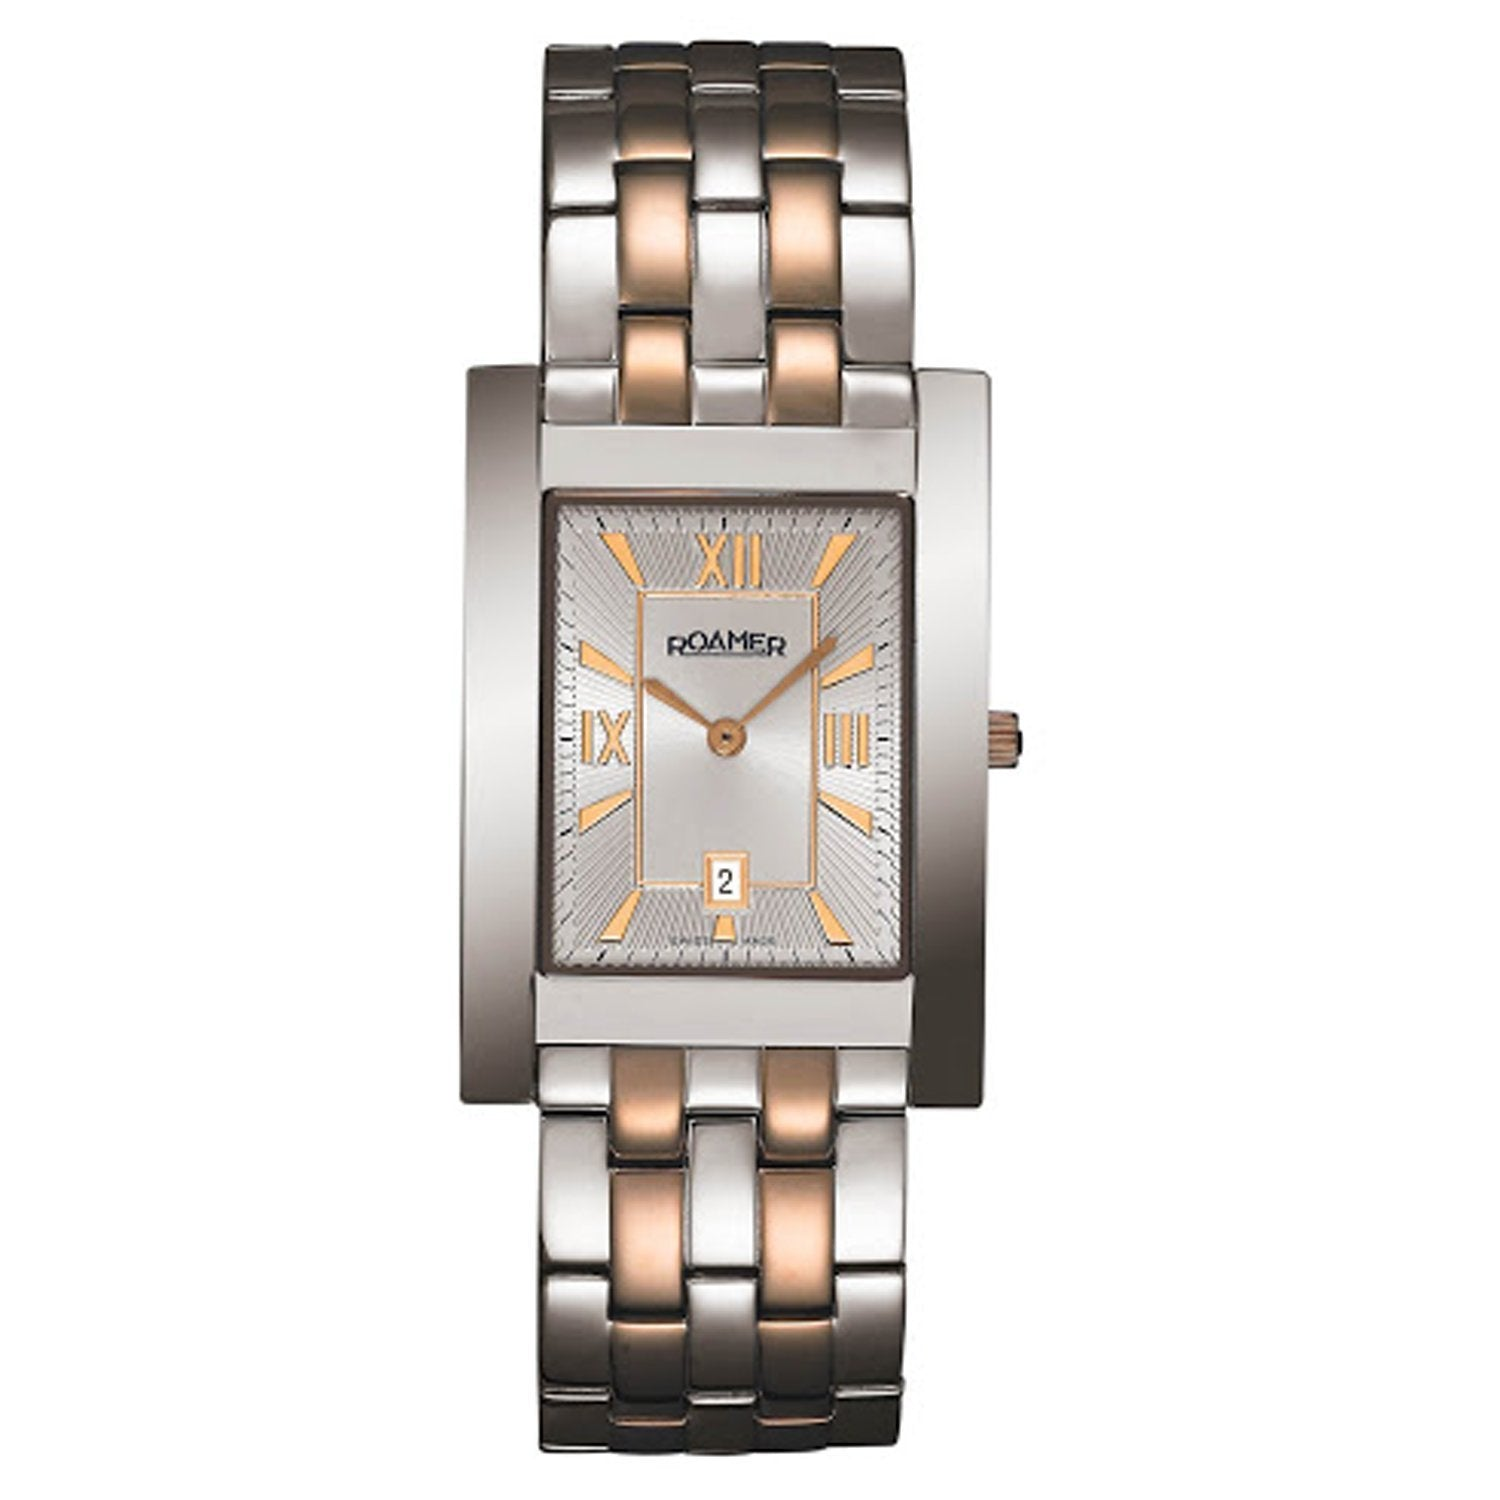 Roamer Classic Vanguard Rectangular Date Roman Numerals - Watches & Crystals